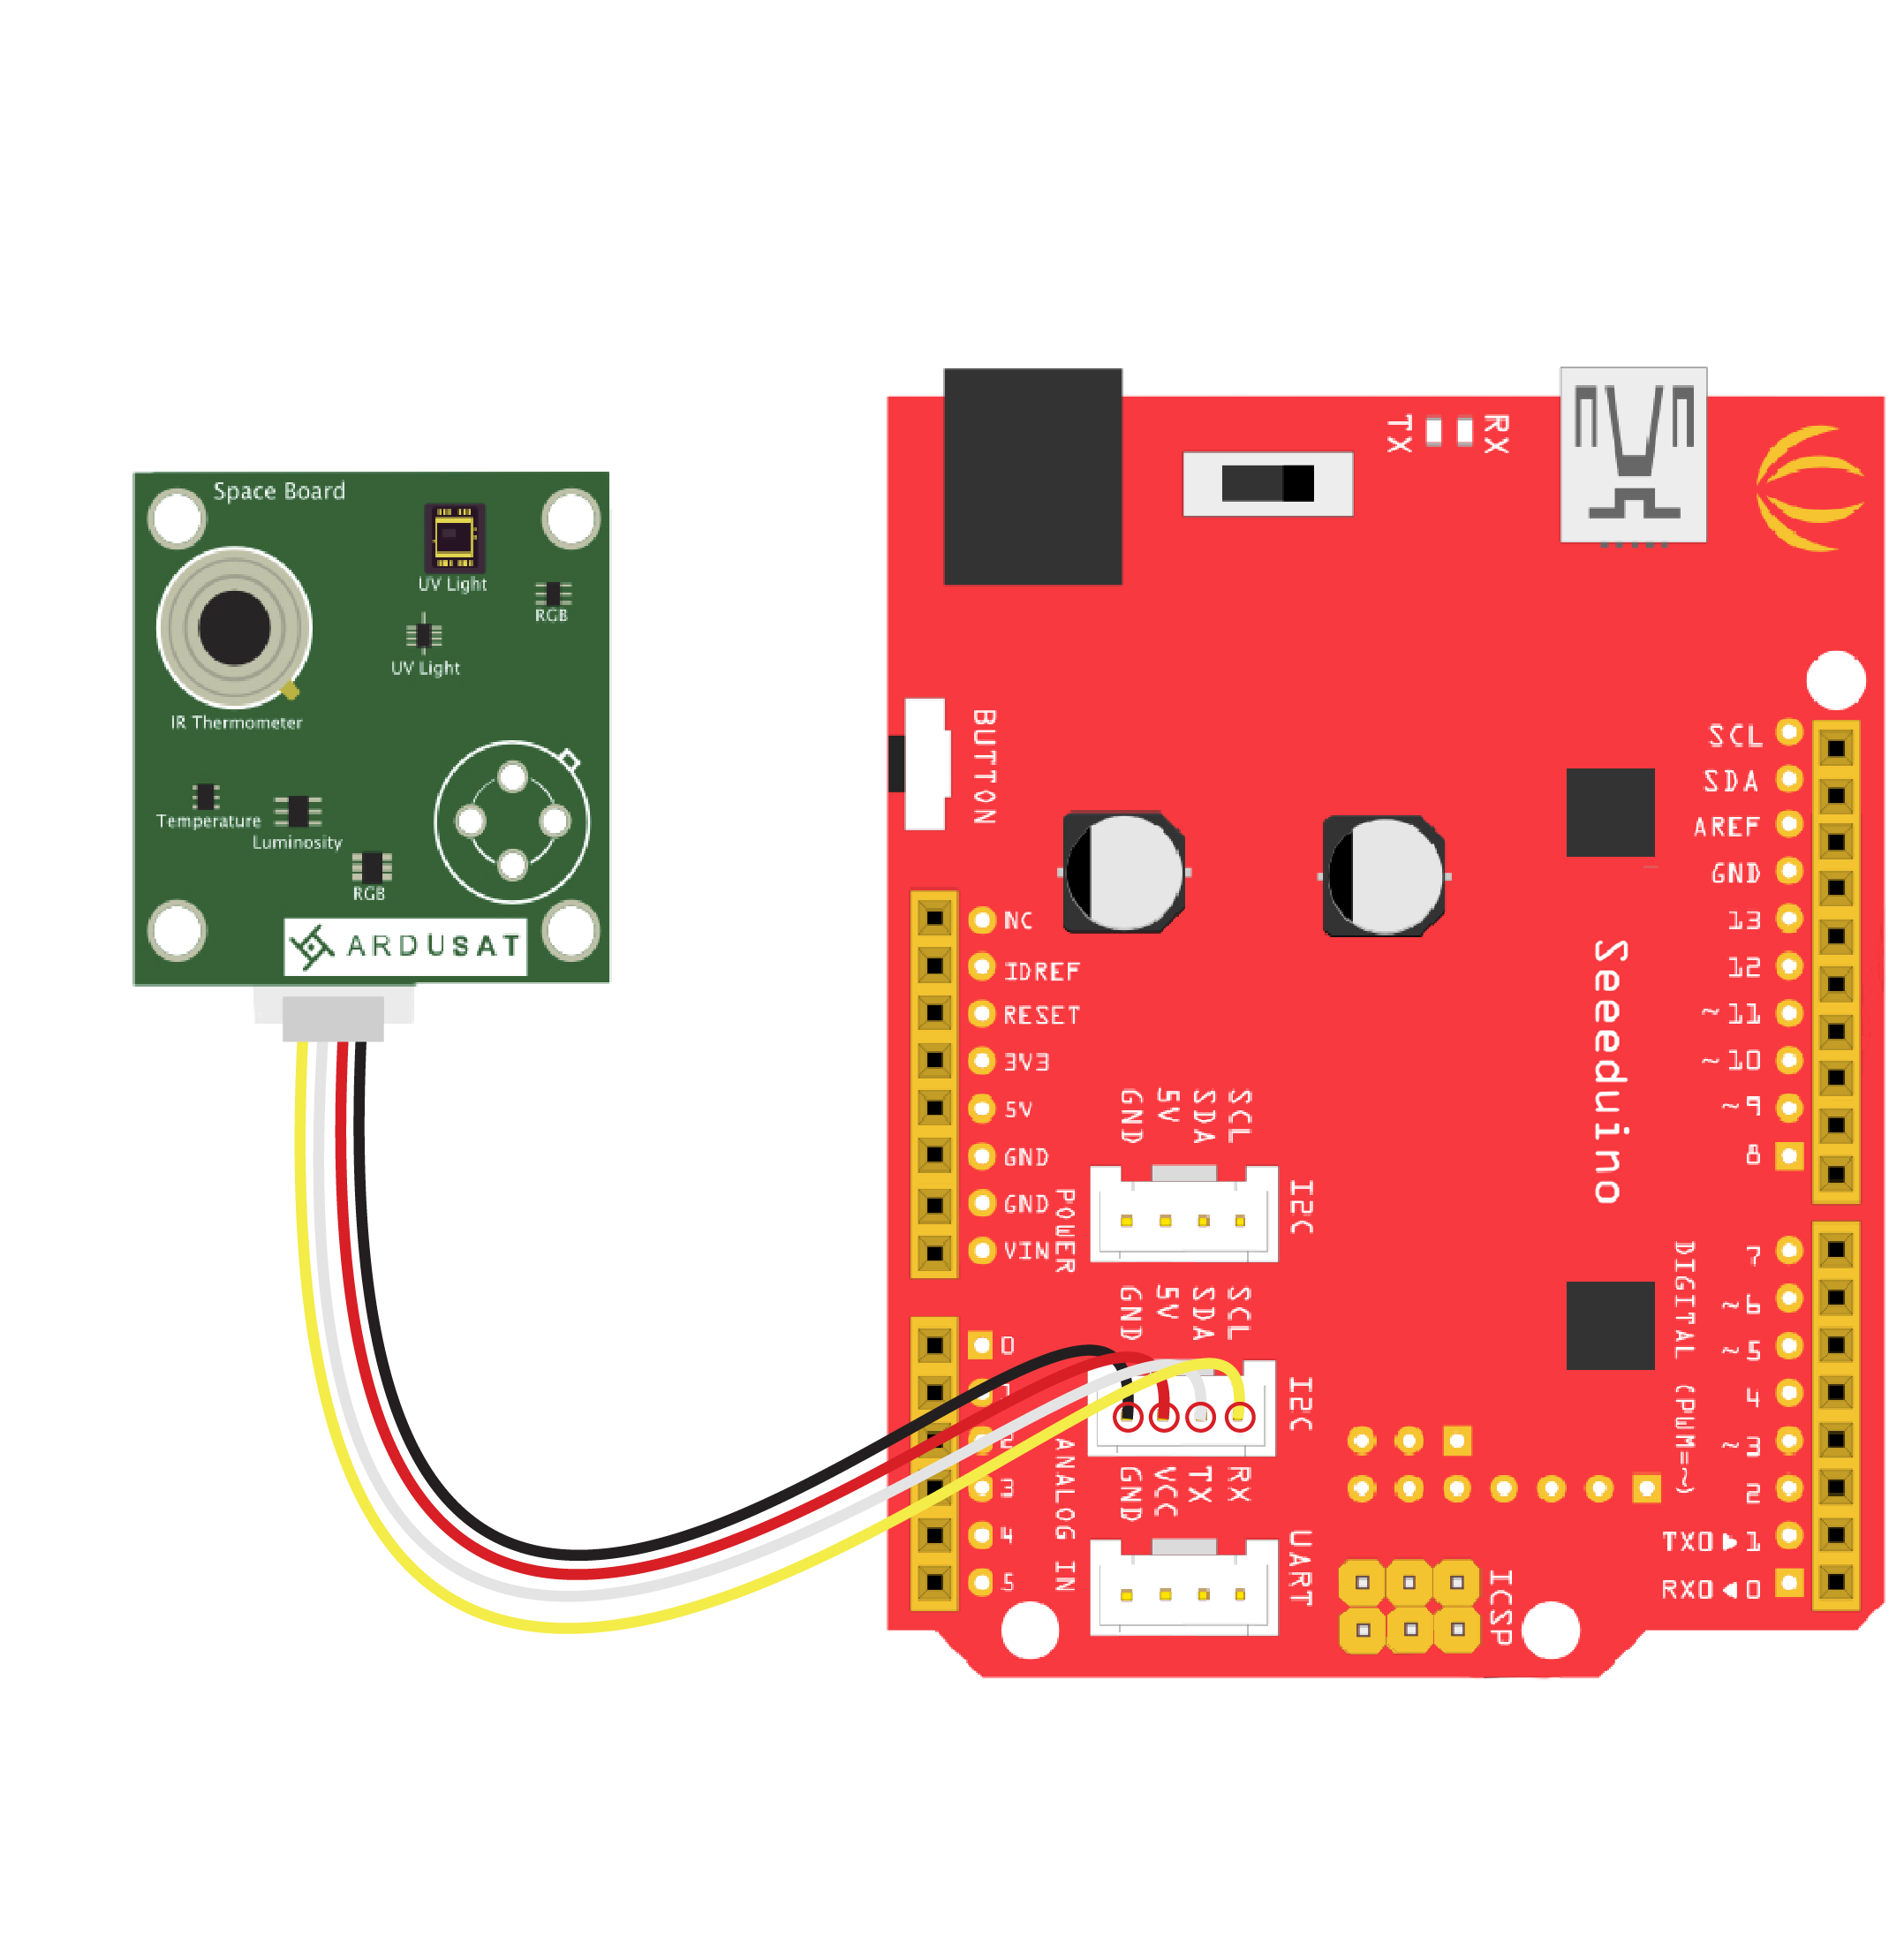 Because Learning Wiring Diagrams Of The Or Ardusat Kit That Uses Arduino Uno Redboard Breakout Sensors Click Here To See